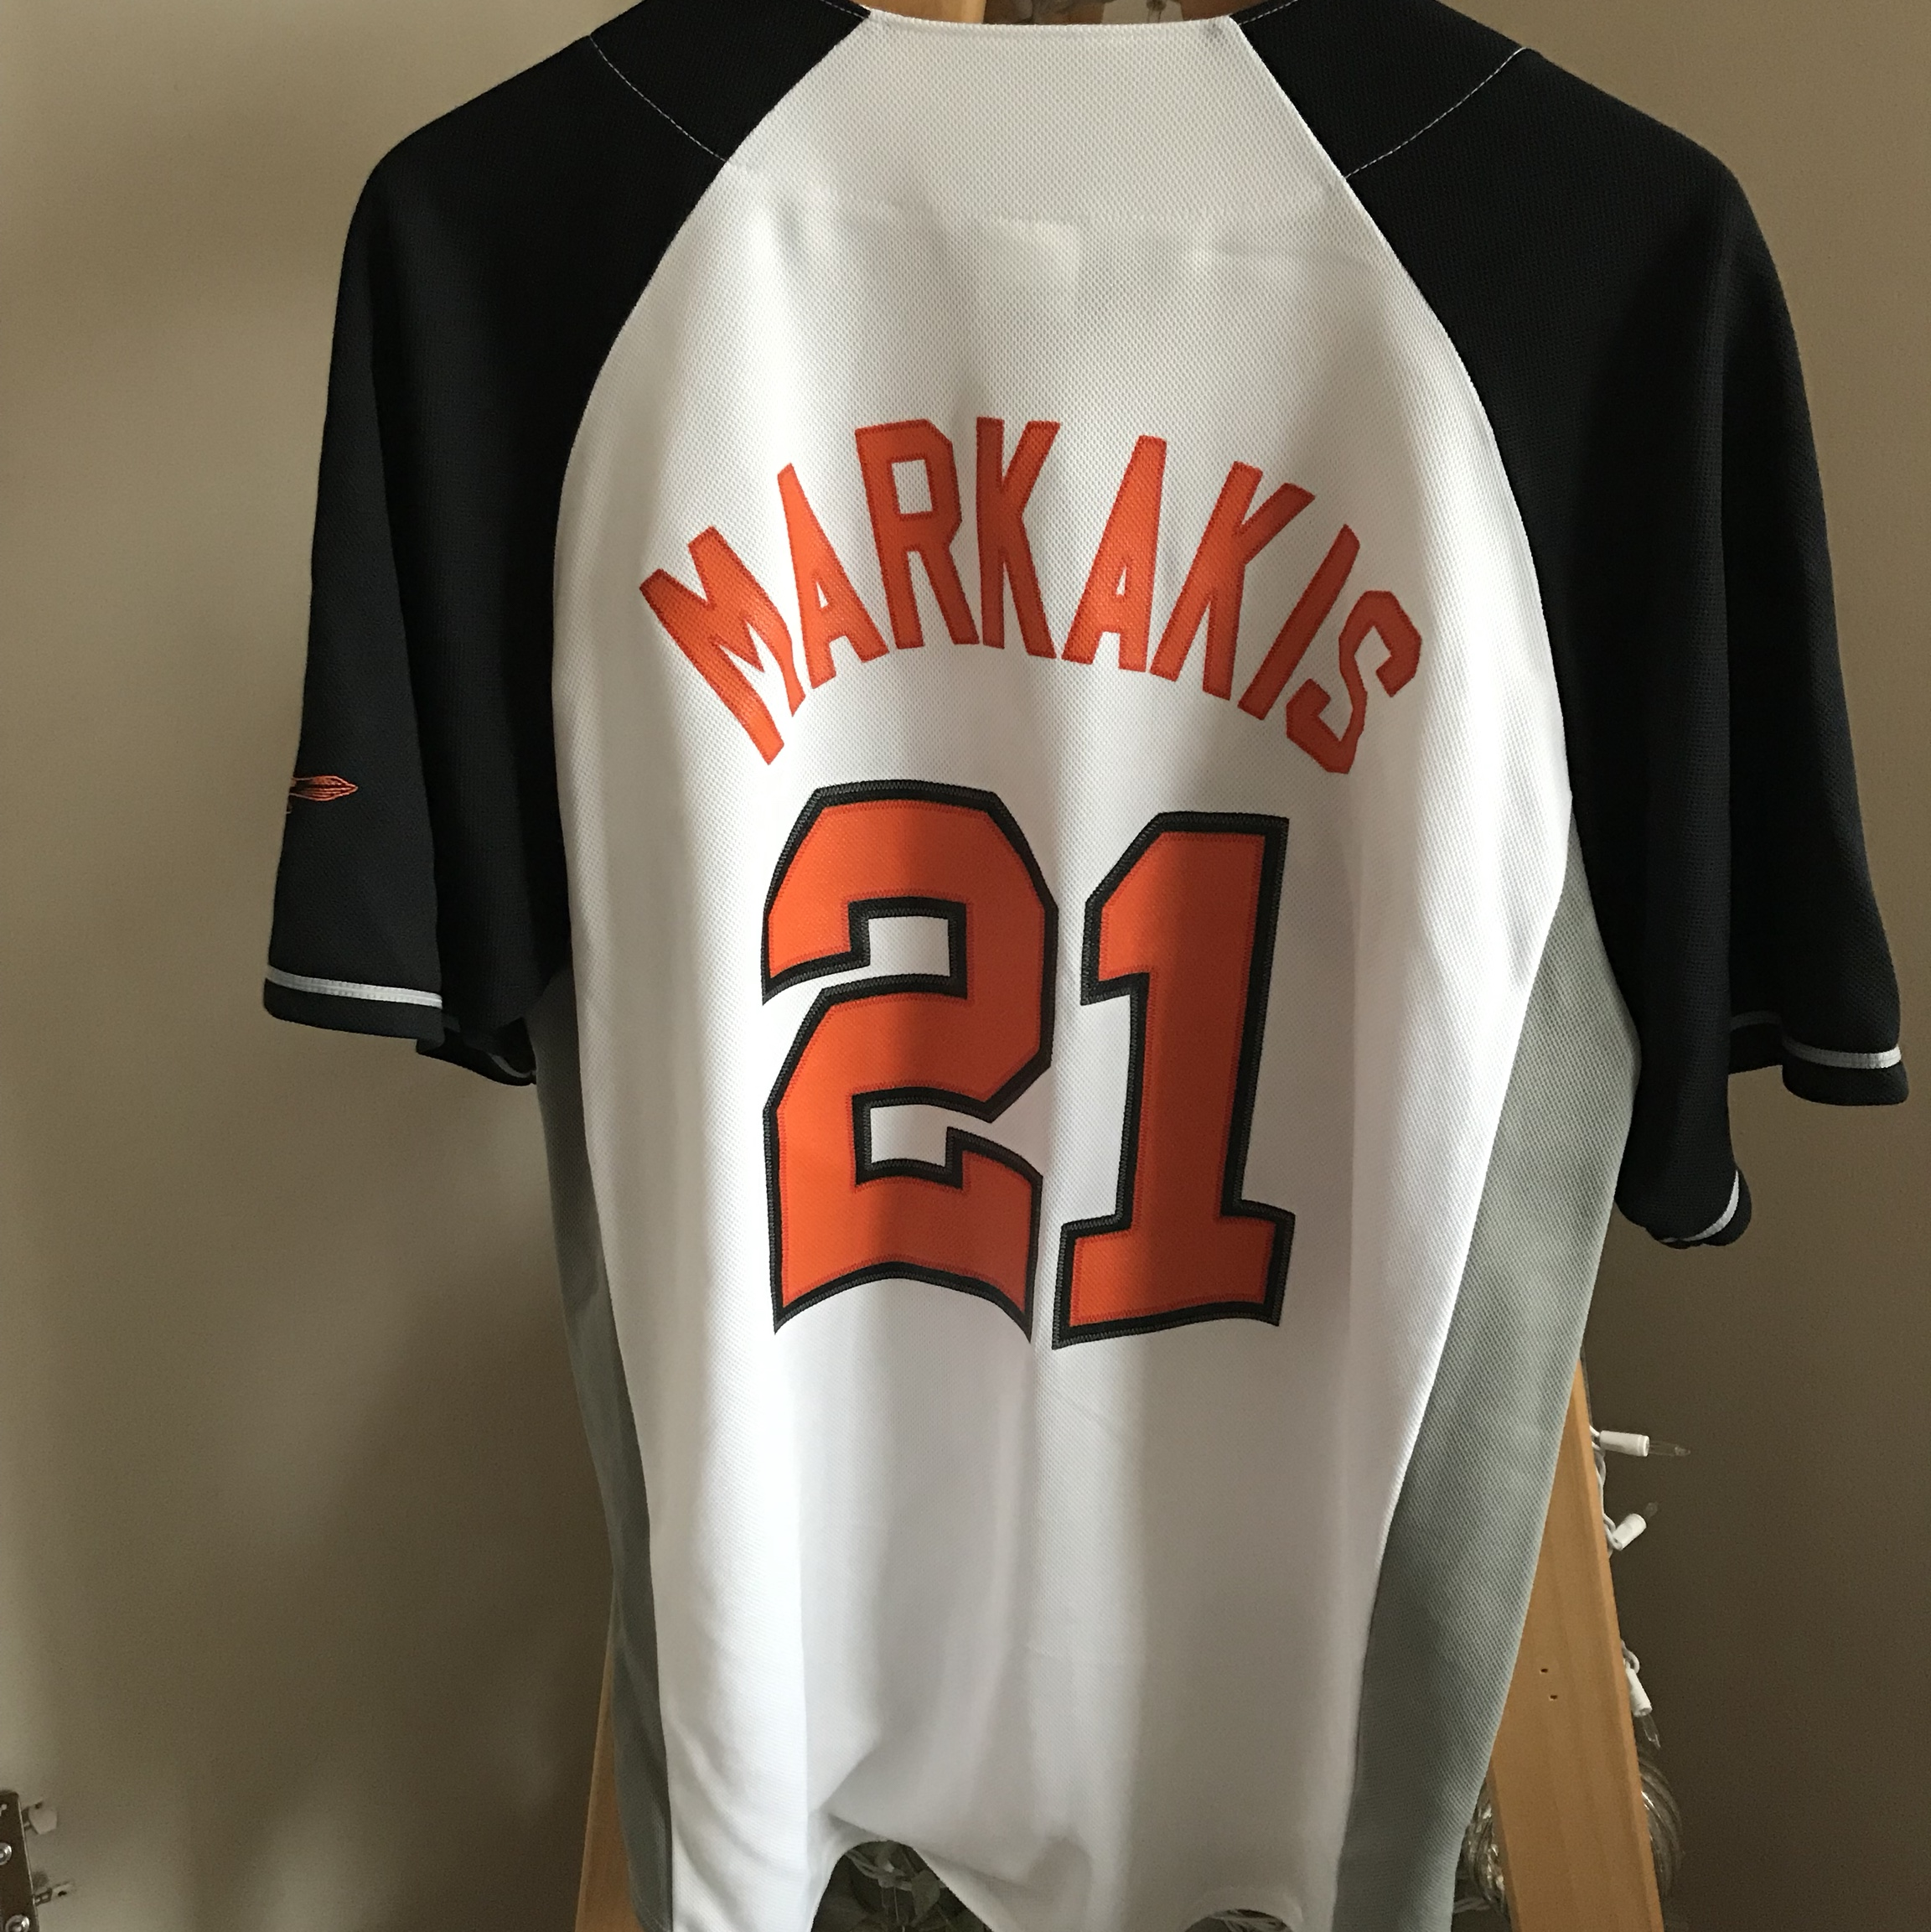 pretty nice 5616c 3a649 Orioles Large Nick Markakis Jersey. No signs of... - Depop